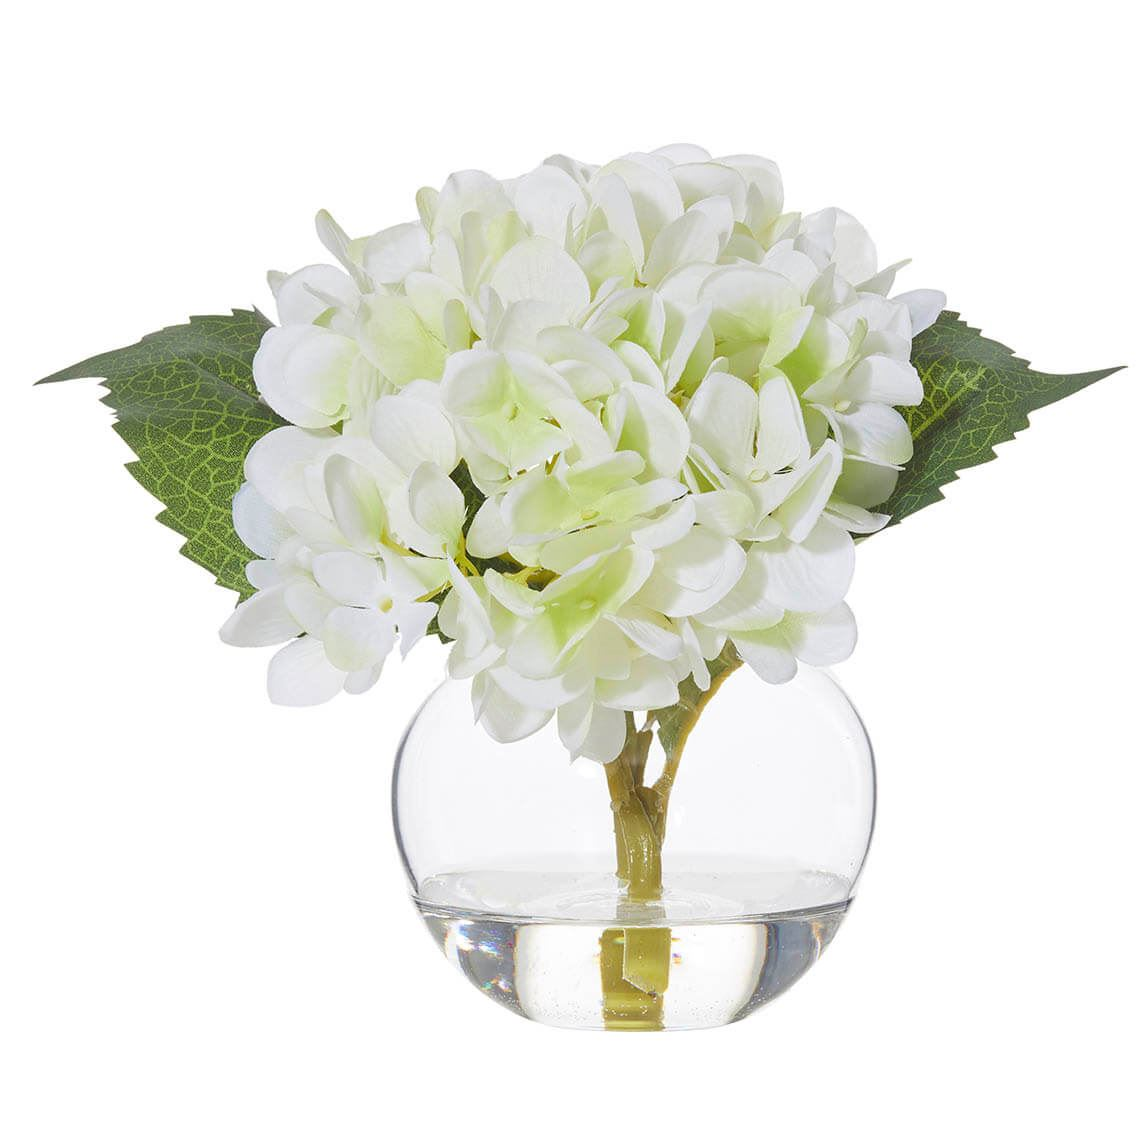 Hydrangea Vase Size W 20cm x D 18cm x H 17cm in White Plastic/Fabric/Wire Freedom by Freedom, a Plants for sale on Style Sourcebook